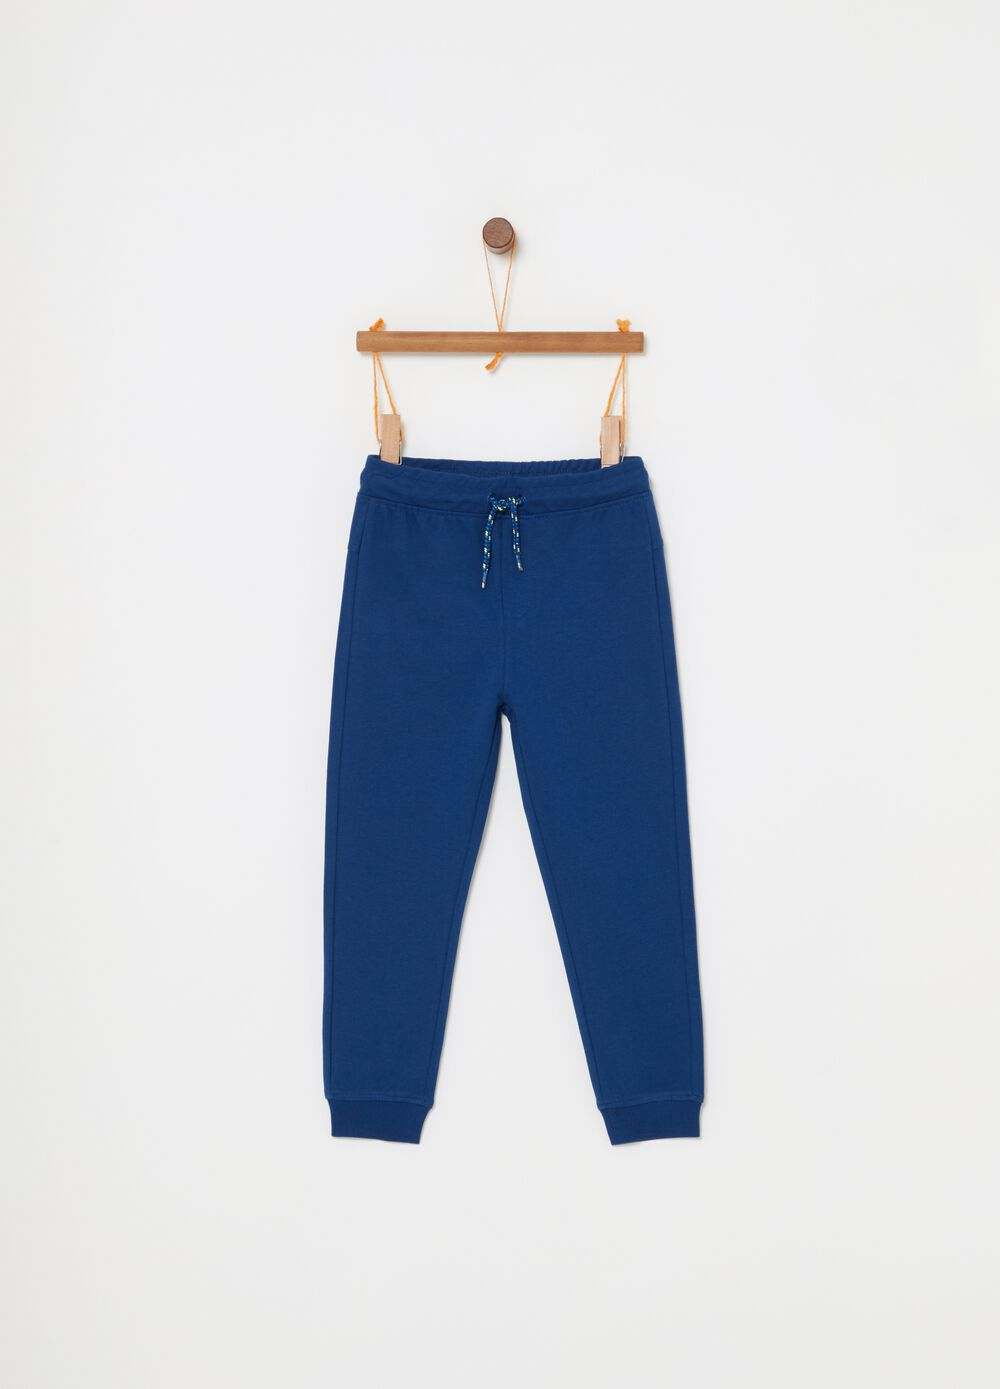 Pantaloni in French Terry di cotone e coulisse